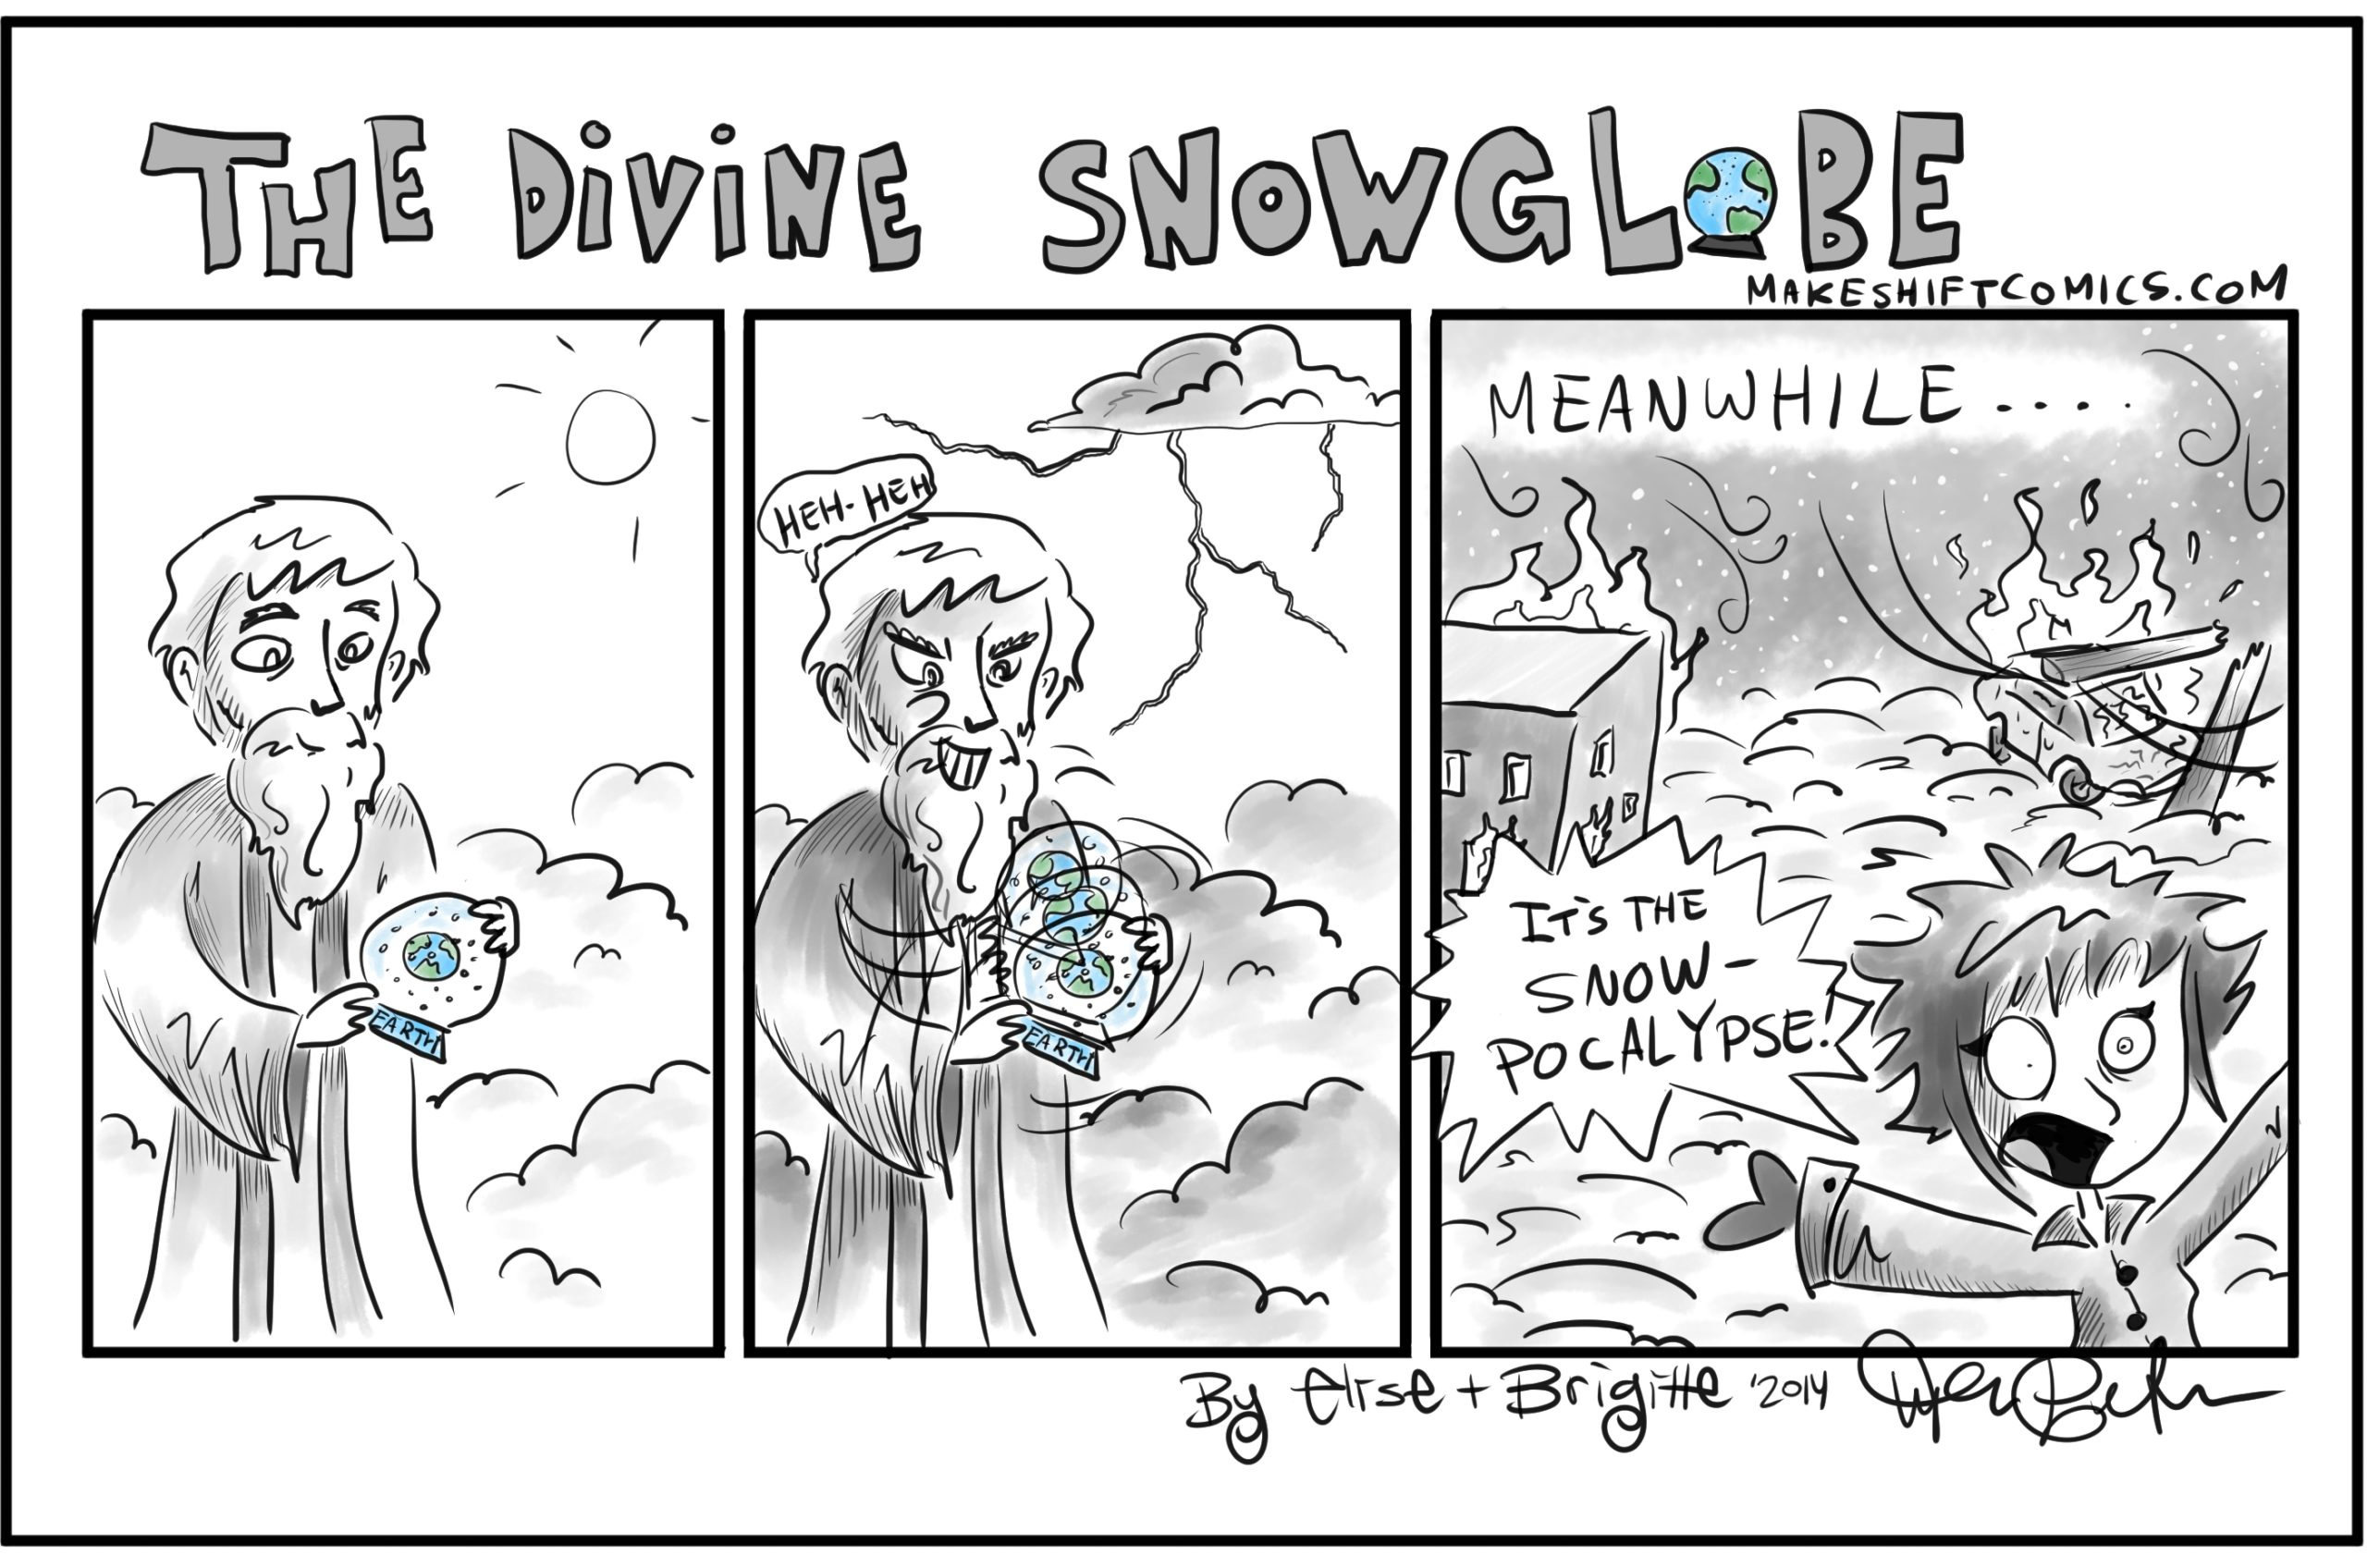 The Divine Snowglobe